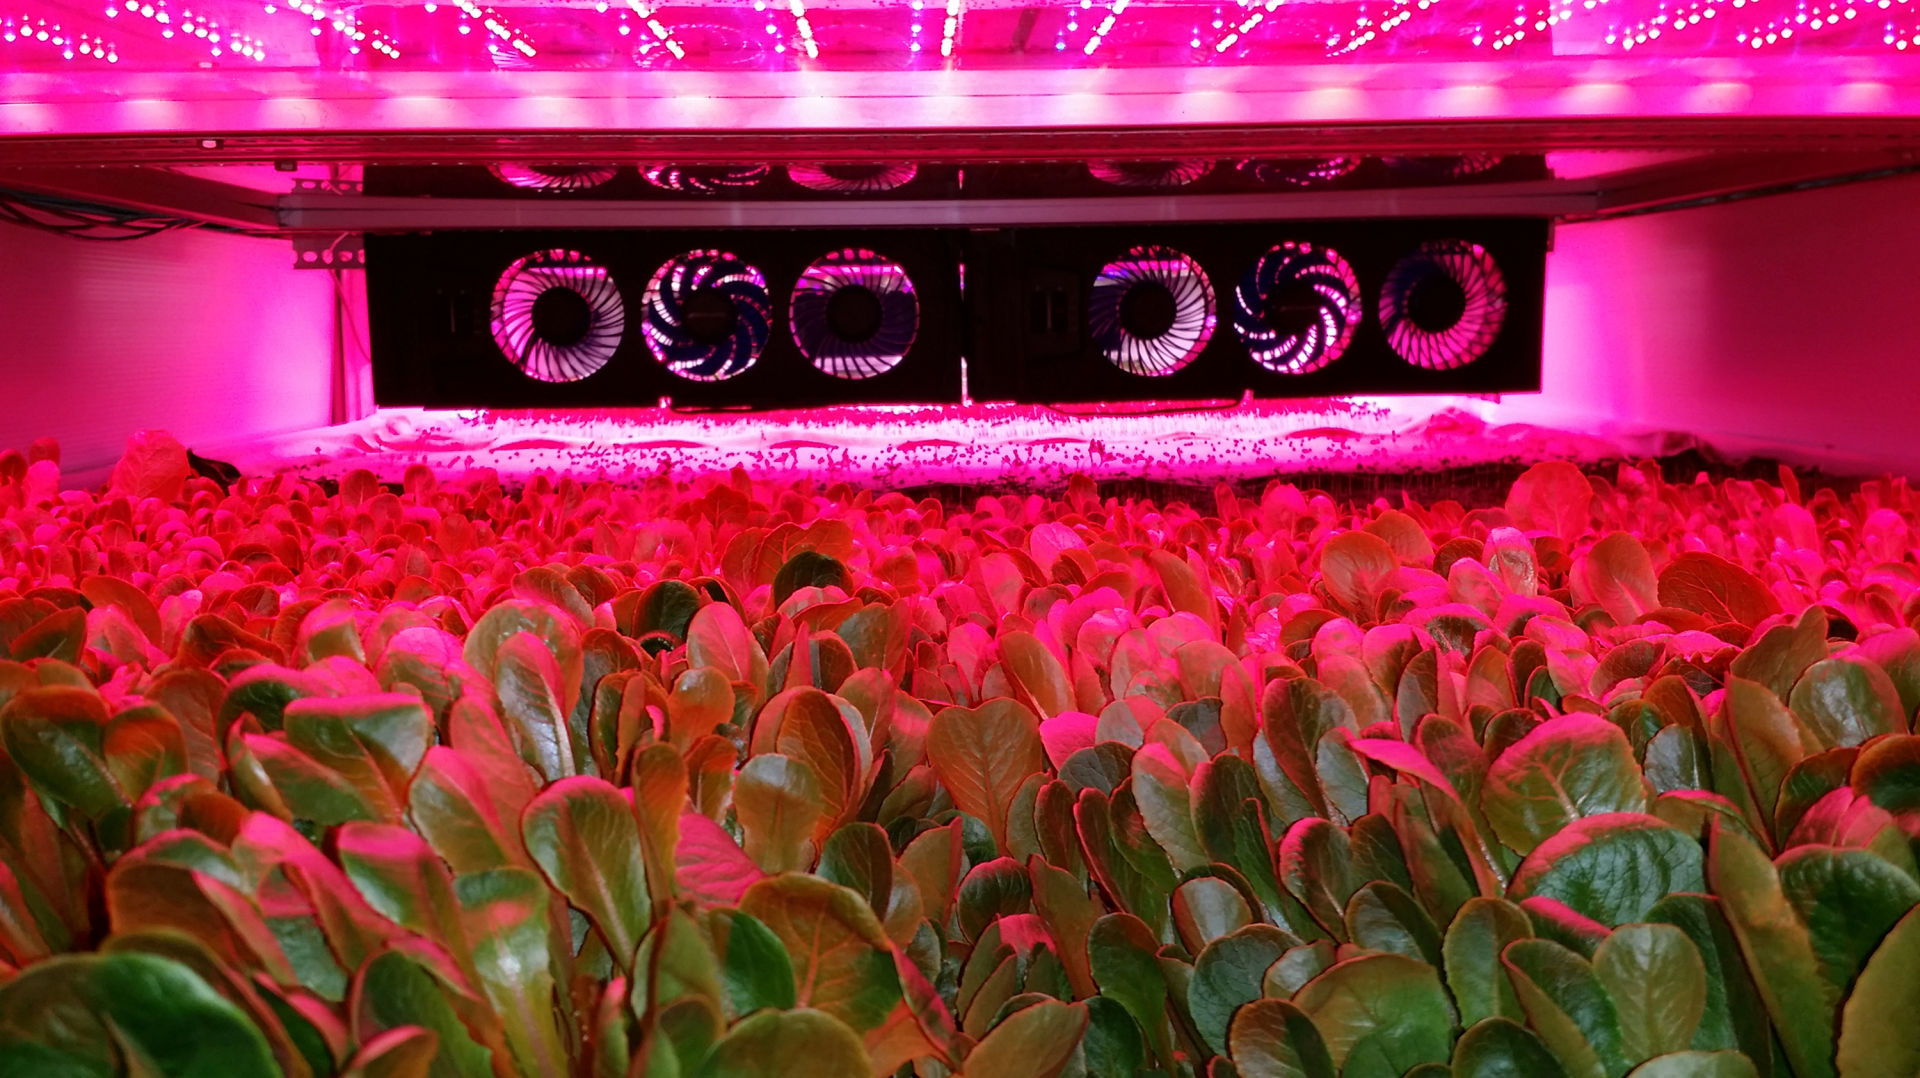 AeroFarms grows greens under intense LED grow lights, while their roots are bathed in a nutrient-rich mist.